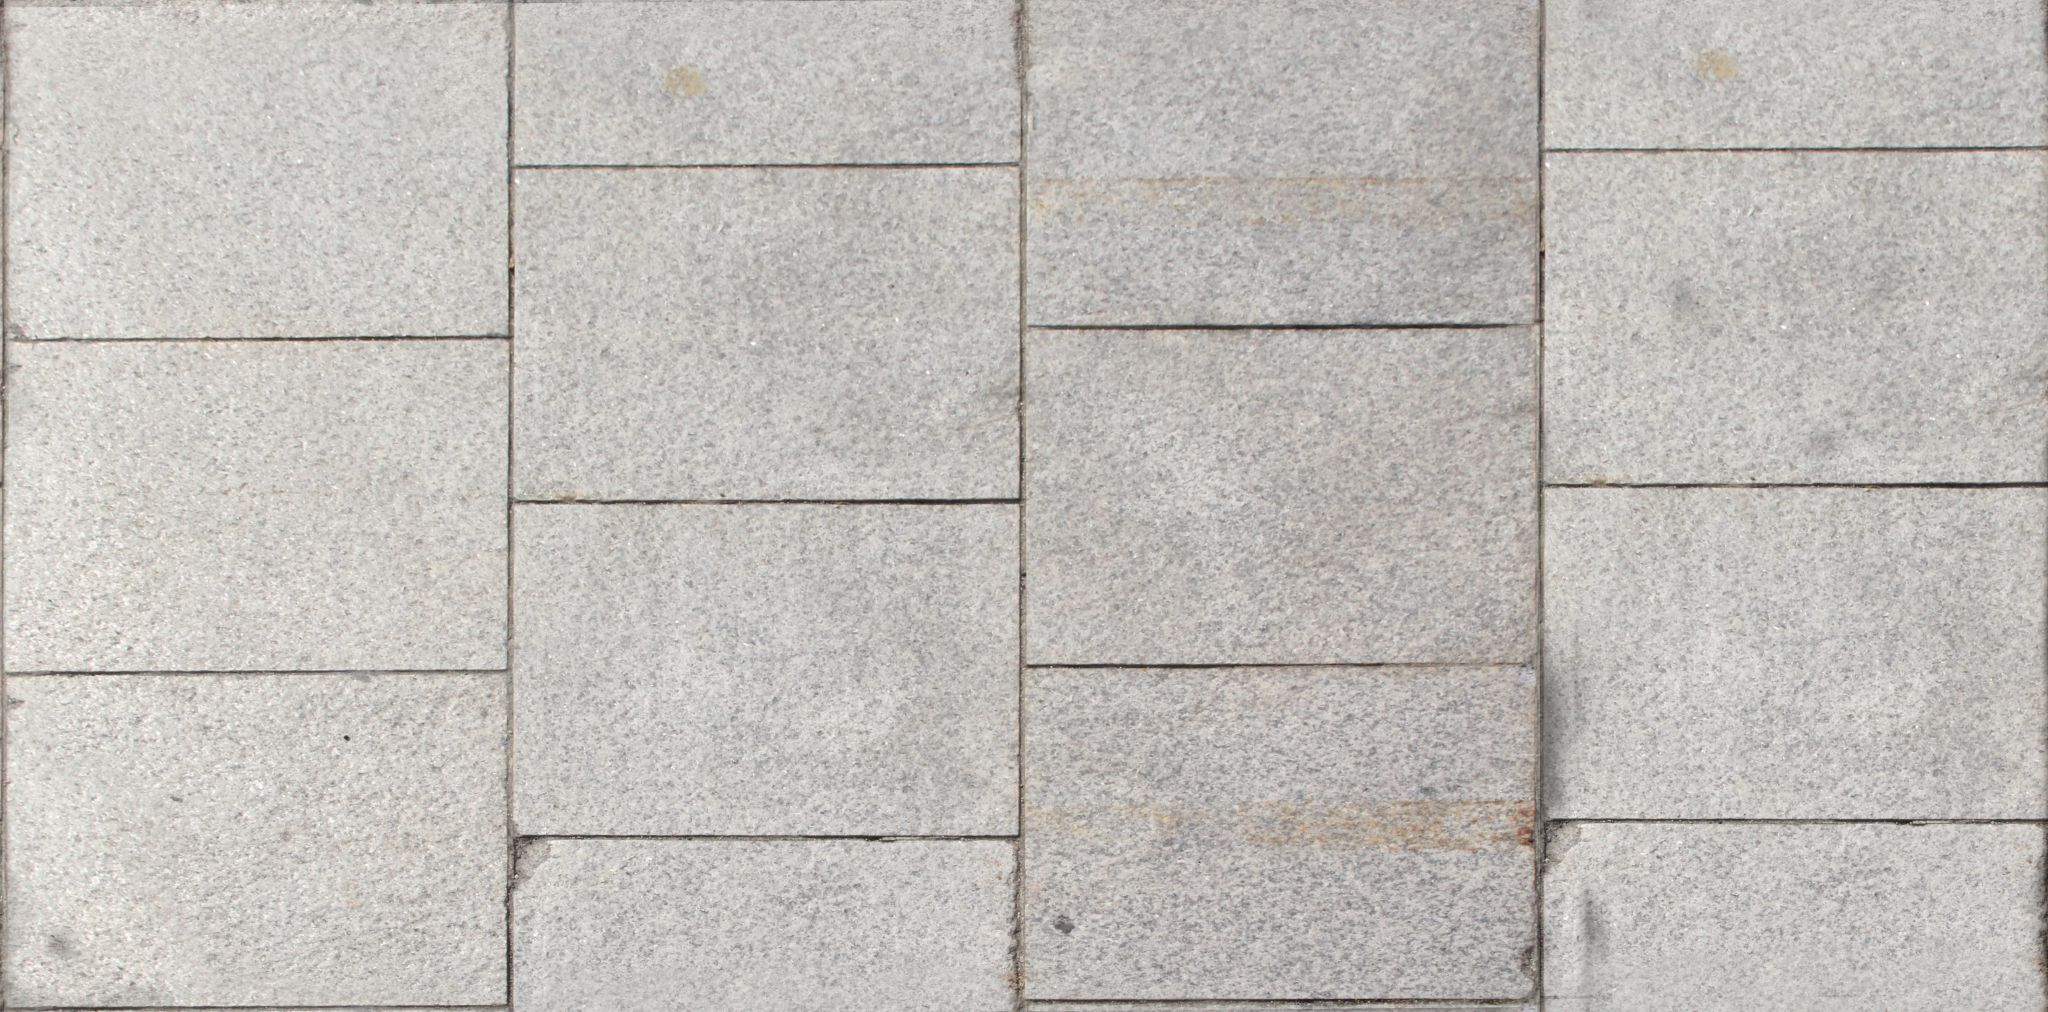 Paving - White Slabs - Seamless Texture with normalmap | OpenGameArt.org